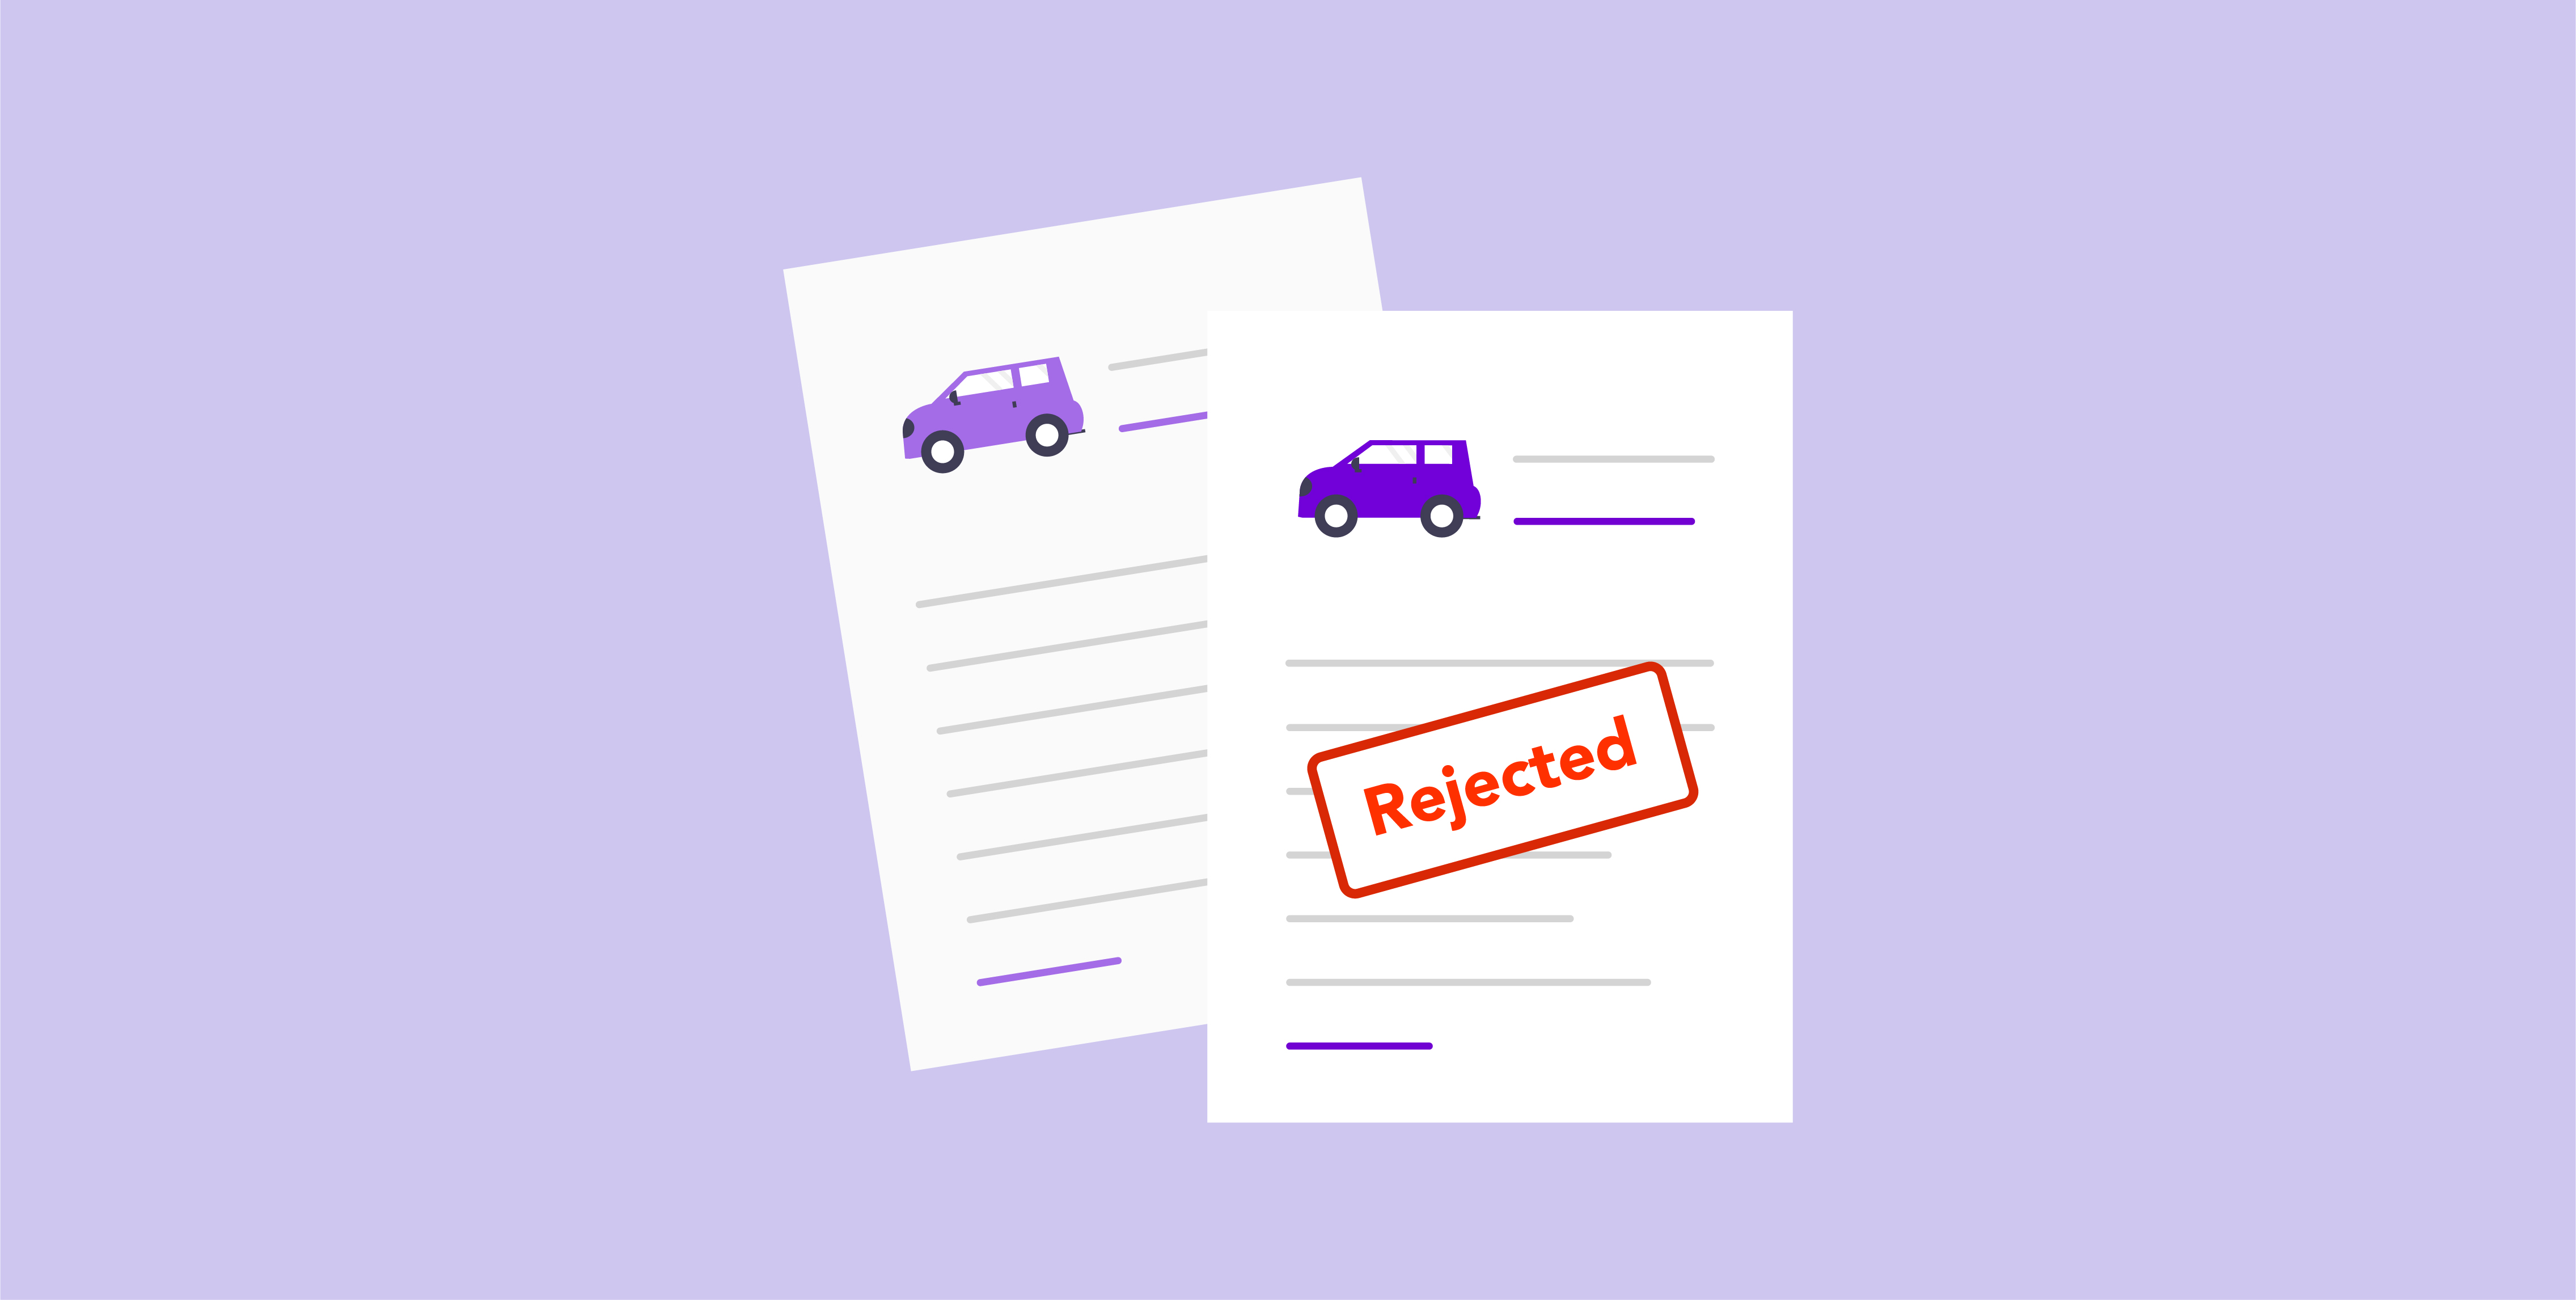 Why car loan applications get declined or rejected